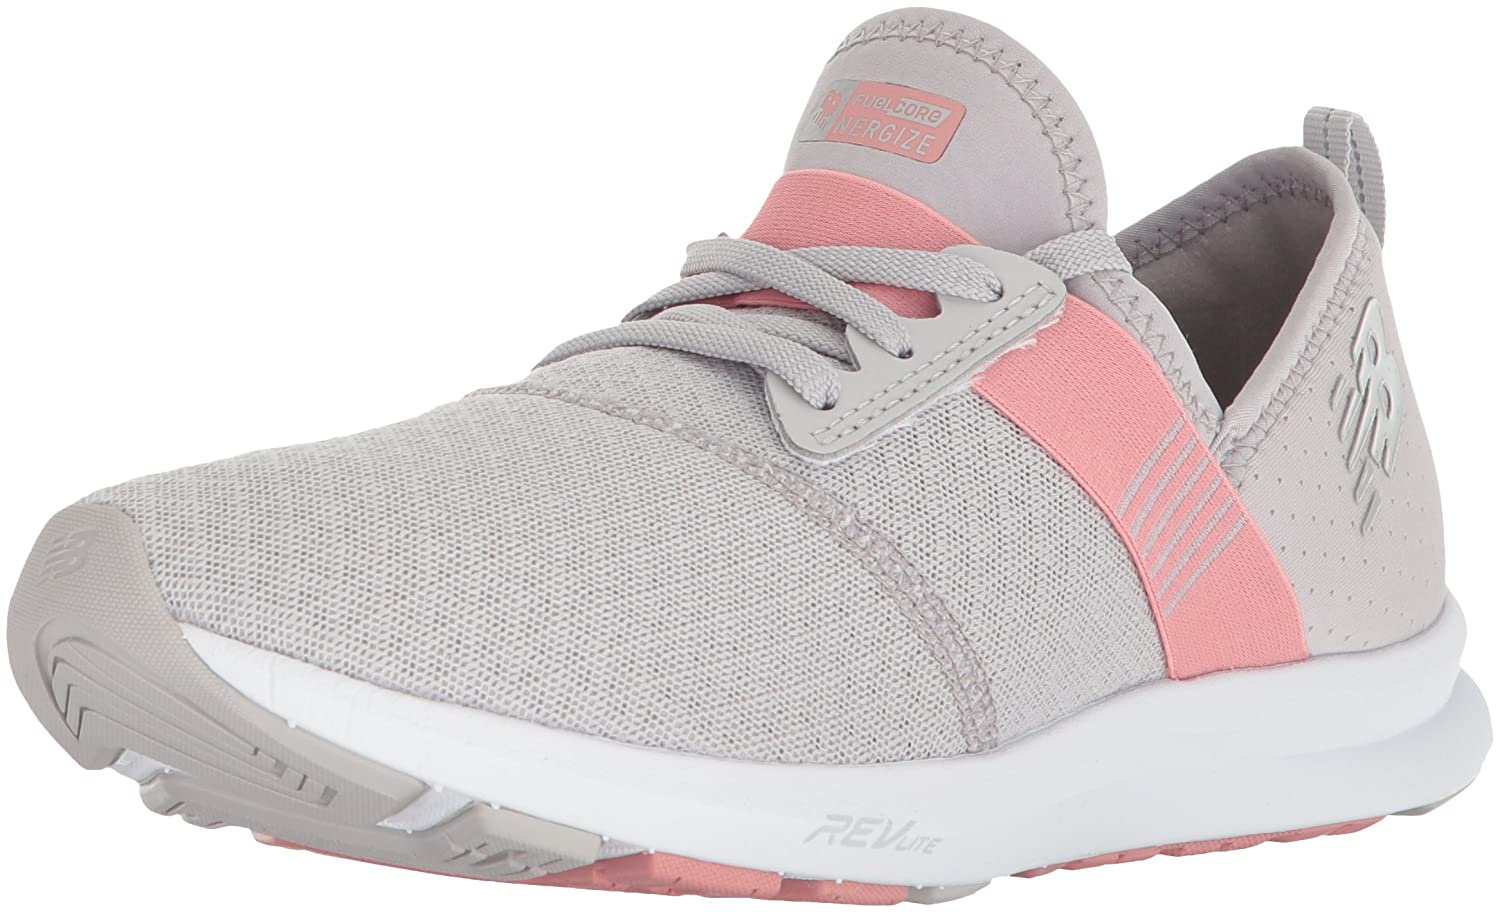 New Balance Women's FuelCore Nergize V1 Fuel Core Cross Trainer B0751DK8FR 8 B(M) US|Silver Mink/Dusted Peach